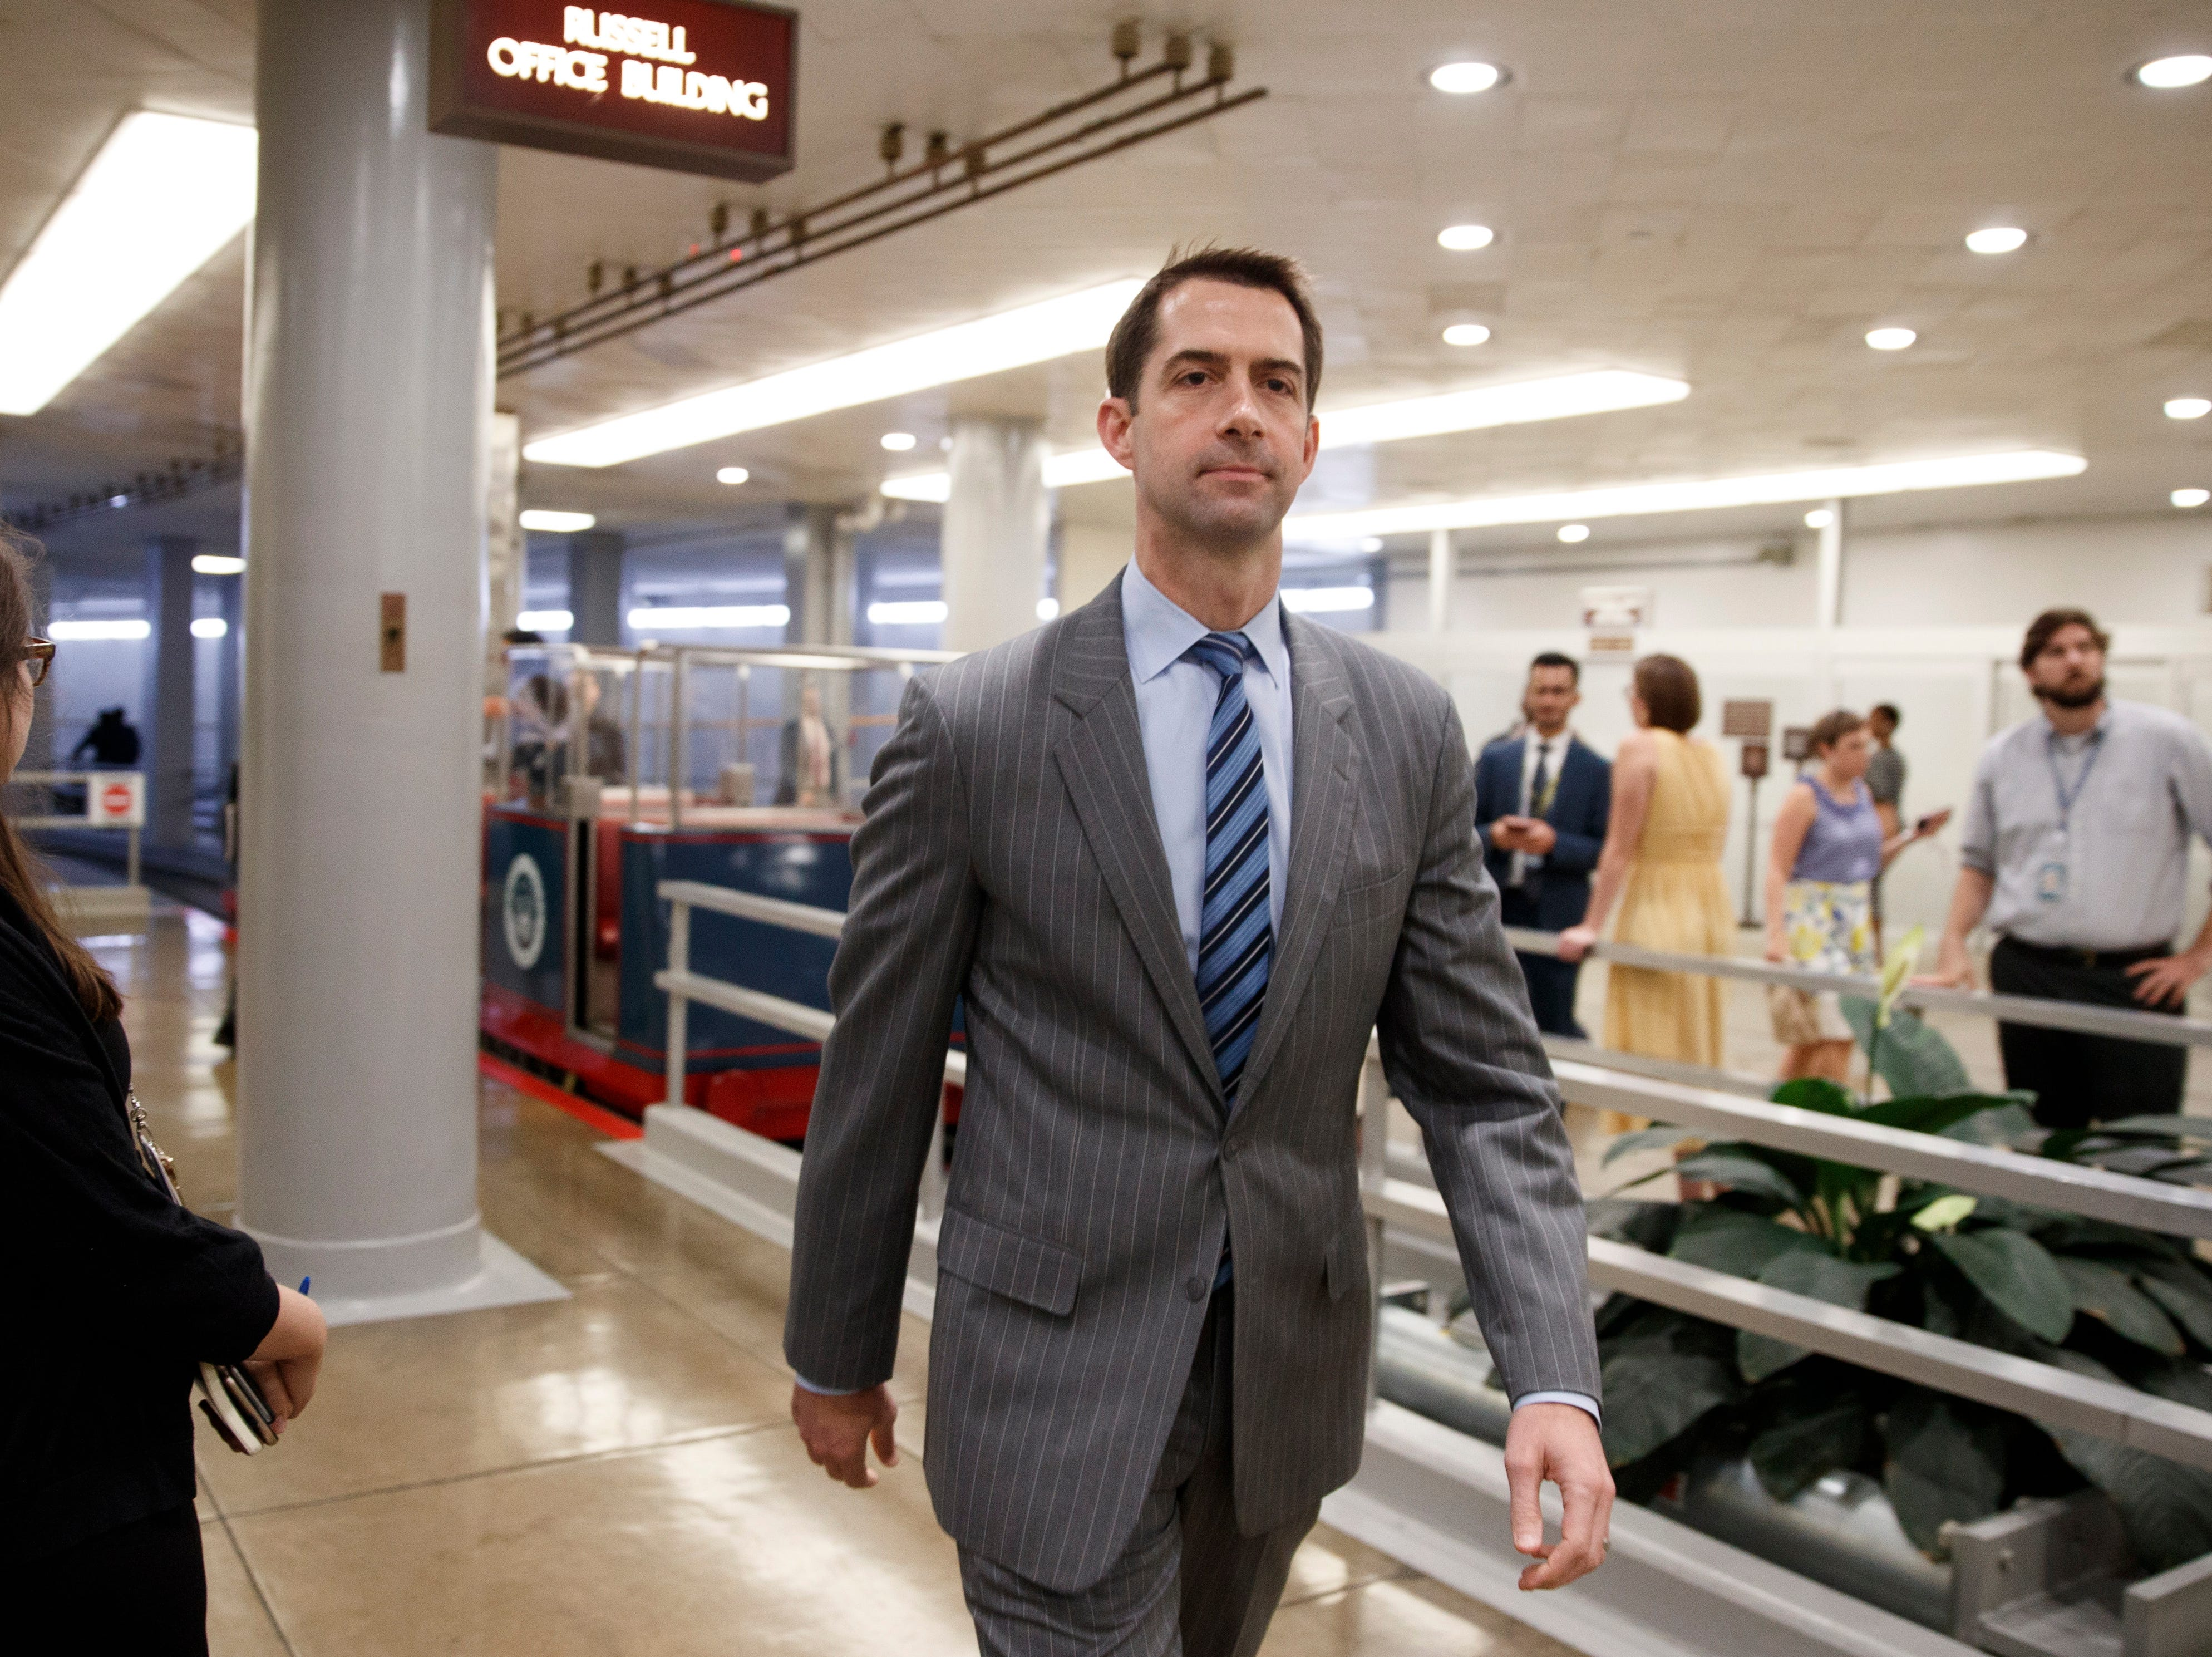 Lame-duck Congress' rush for criminal justice reform plan will hurt, not help: Tom Cotton